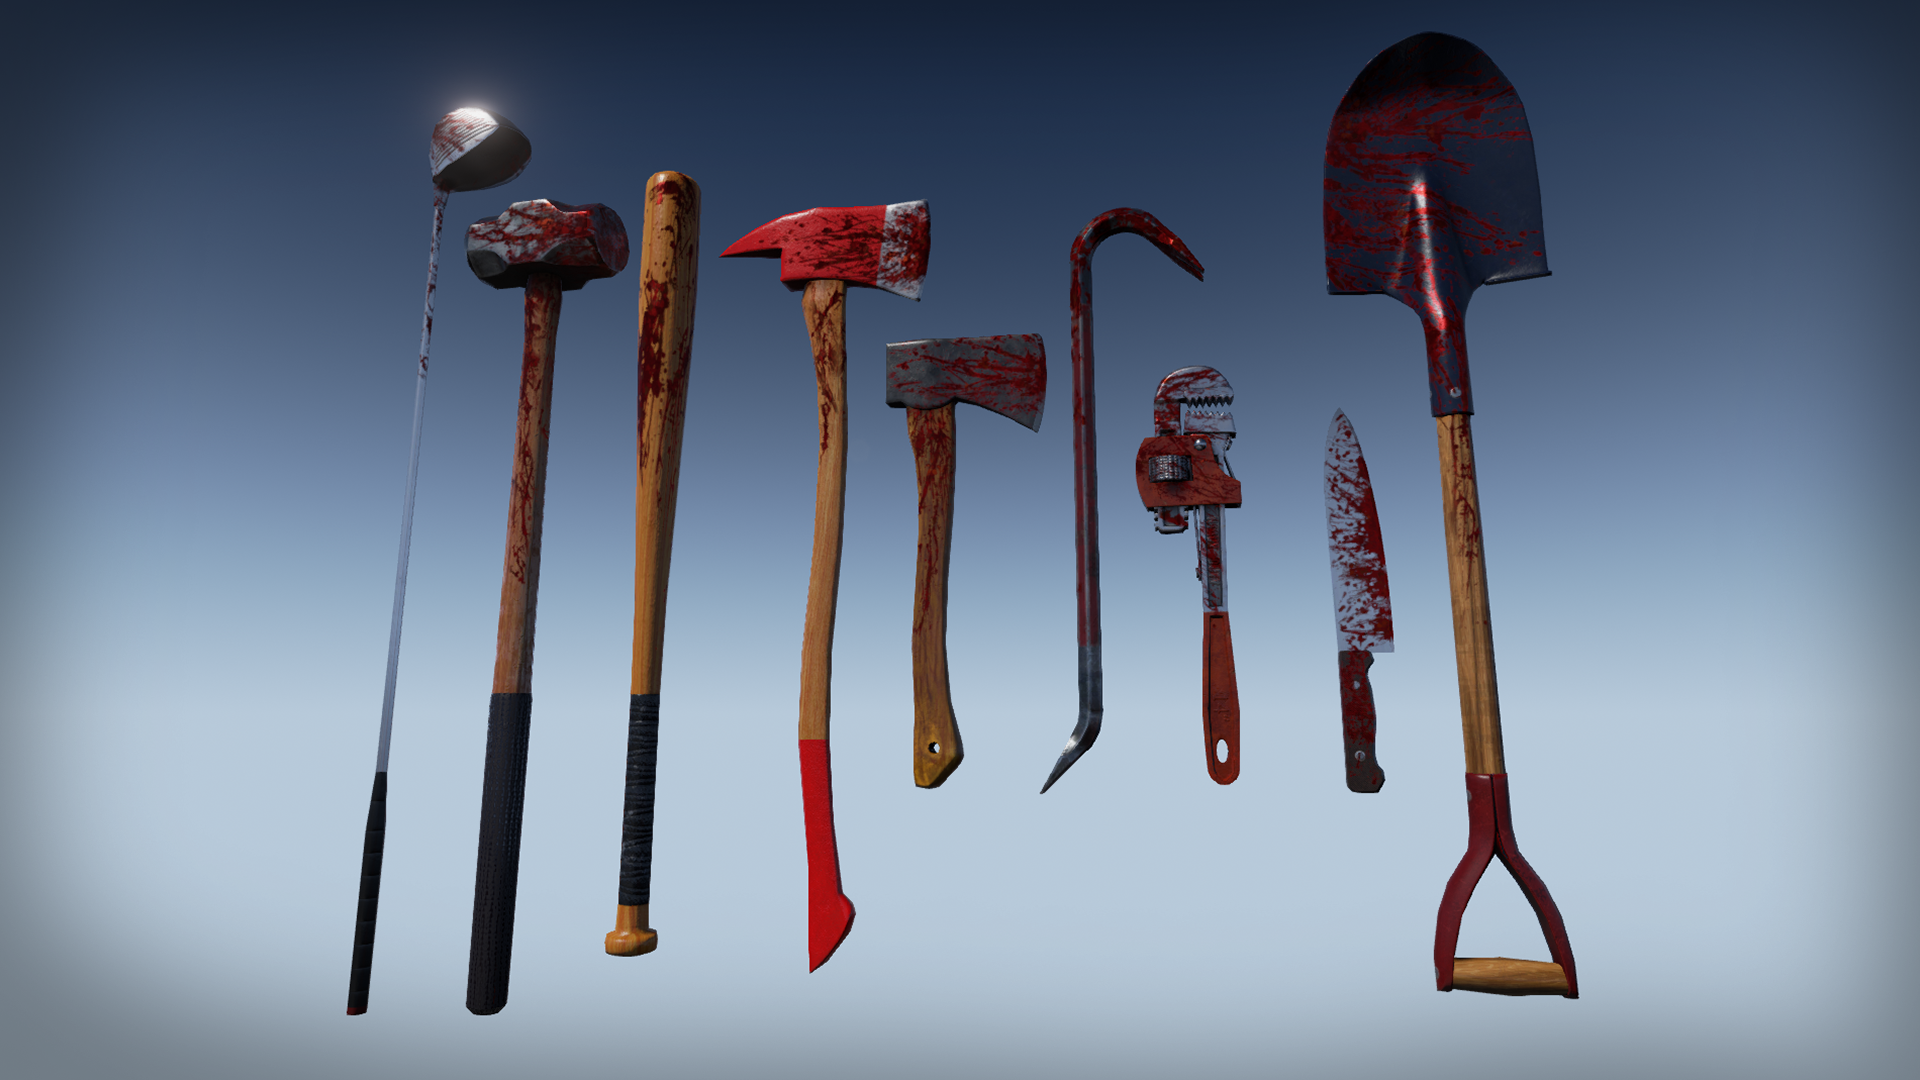 Zombie melee weapons by jeong seong kyo in weapons ue4 marketplace malvernweather Image collections